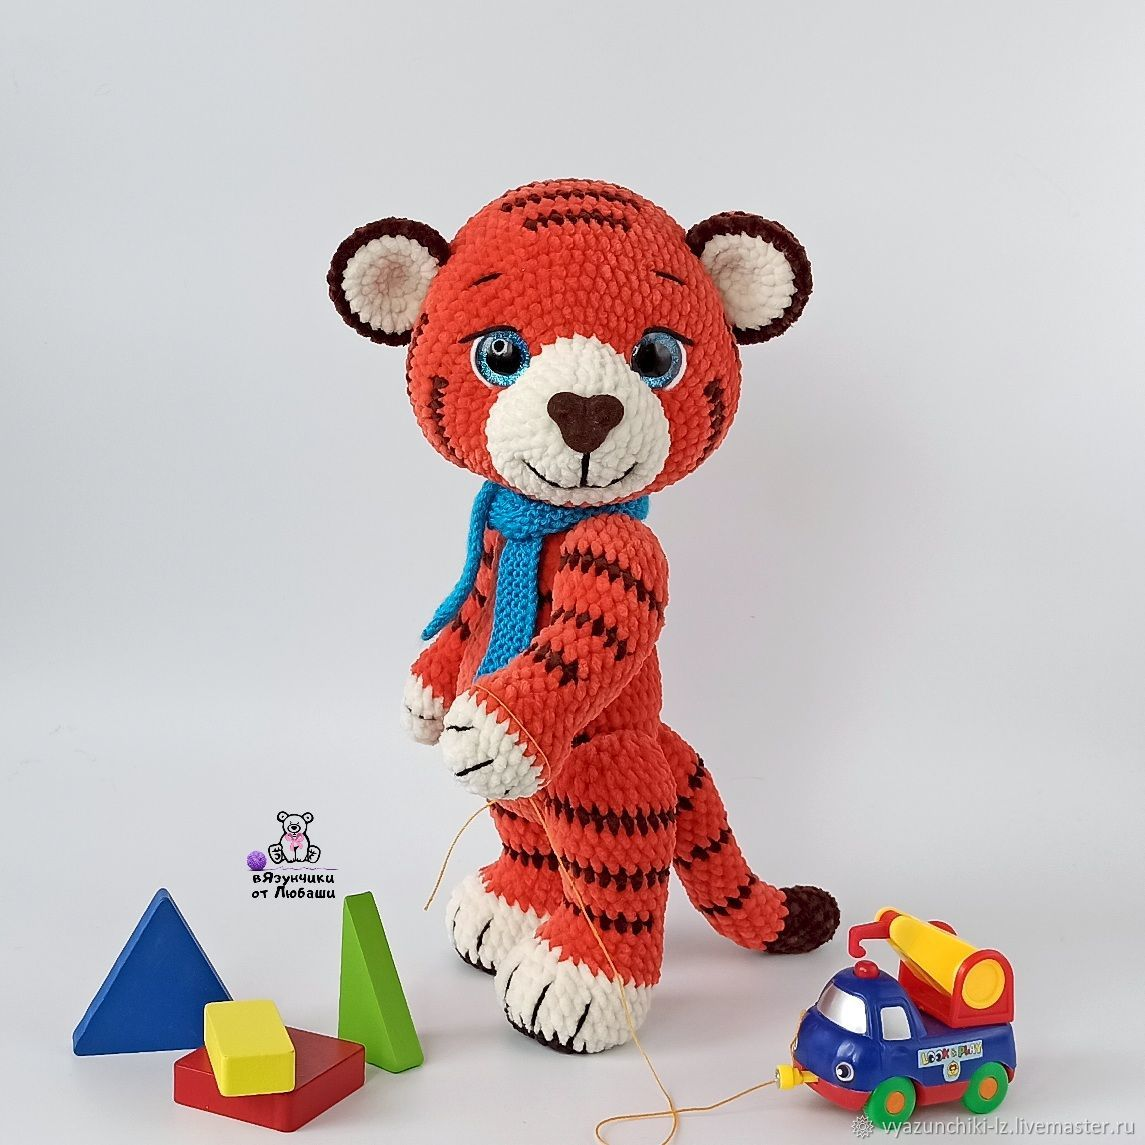 Tiger cub Lo knitted toy tiger made of plush yarn as a gift, Stuffed Toys, Volokolamsk,  Фото №1